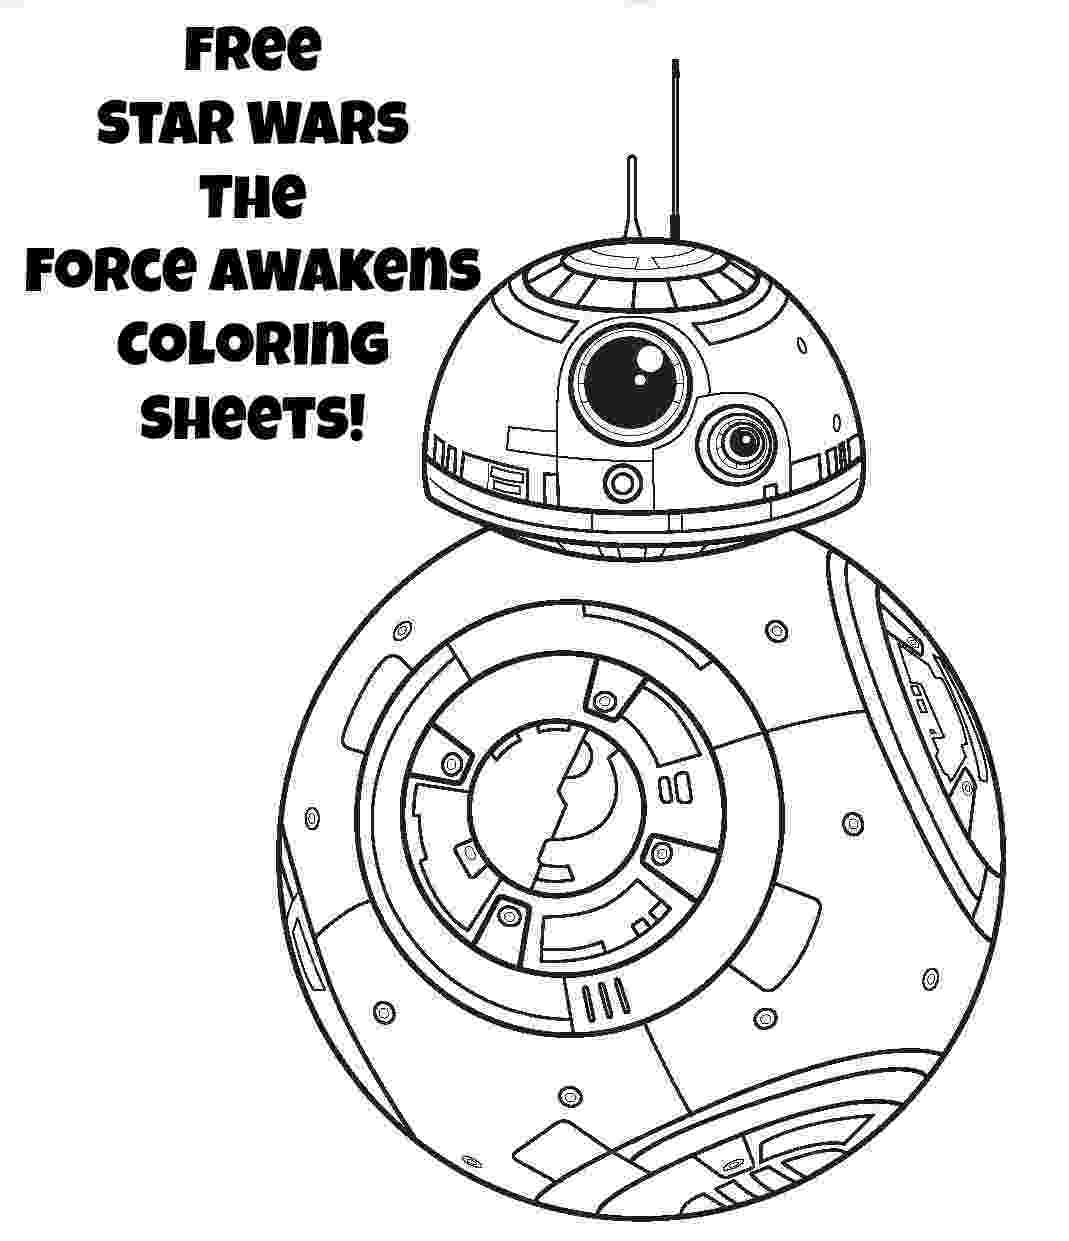 star wars free coloring pages free printable star wars coloring pages free printable coloring free wars pages star